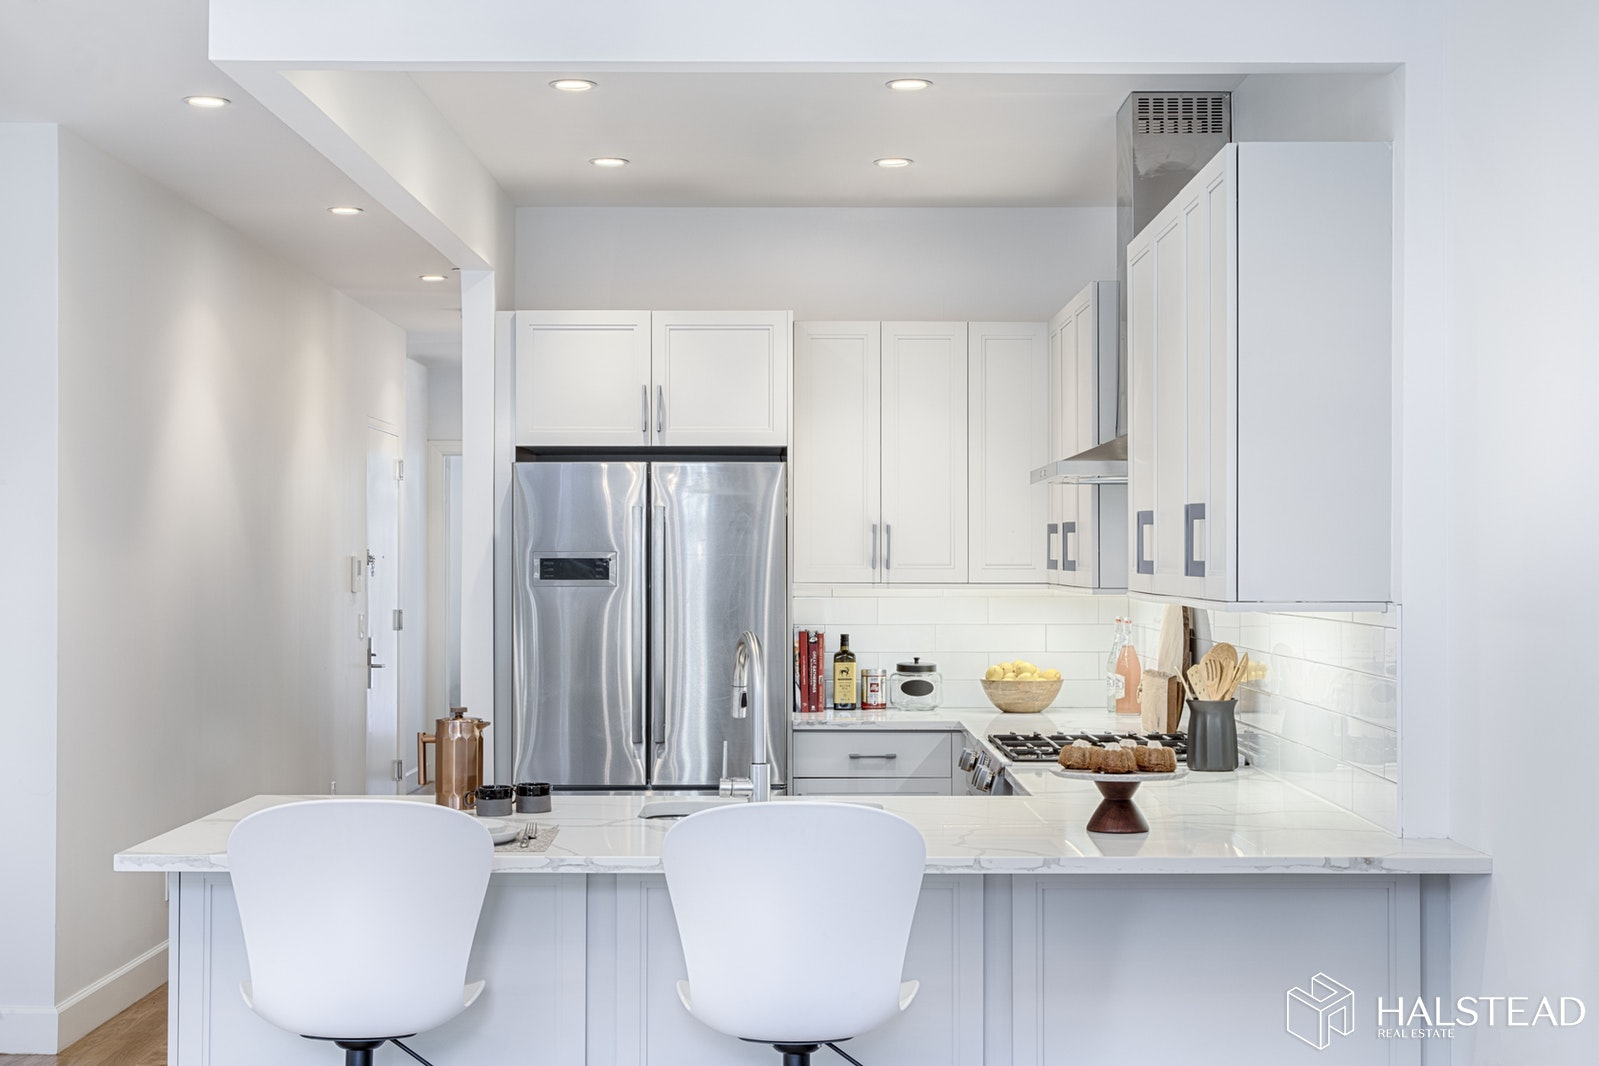 755 Bergen St 2, Crown Heights, Brooklyn, NY, 11238, $1,550,000, Property For Sale, Halstead Real Estate, Photo 3